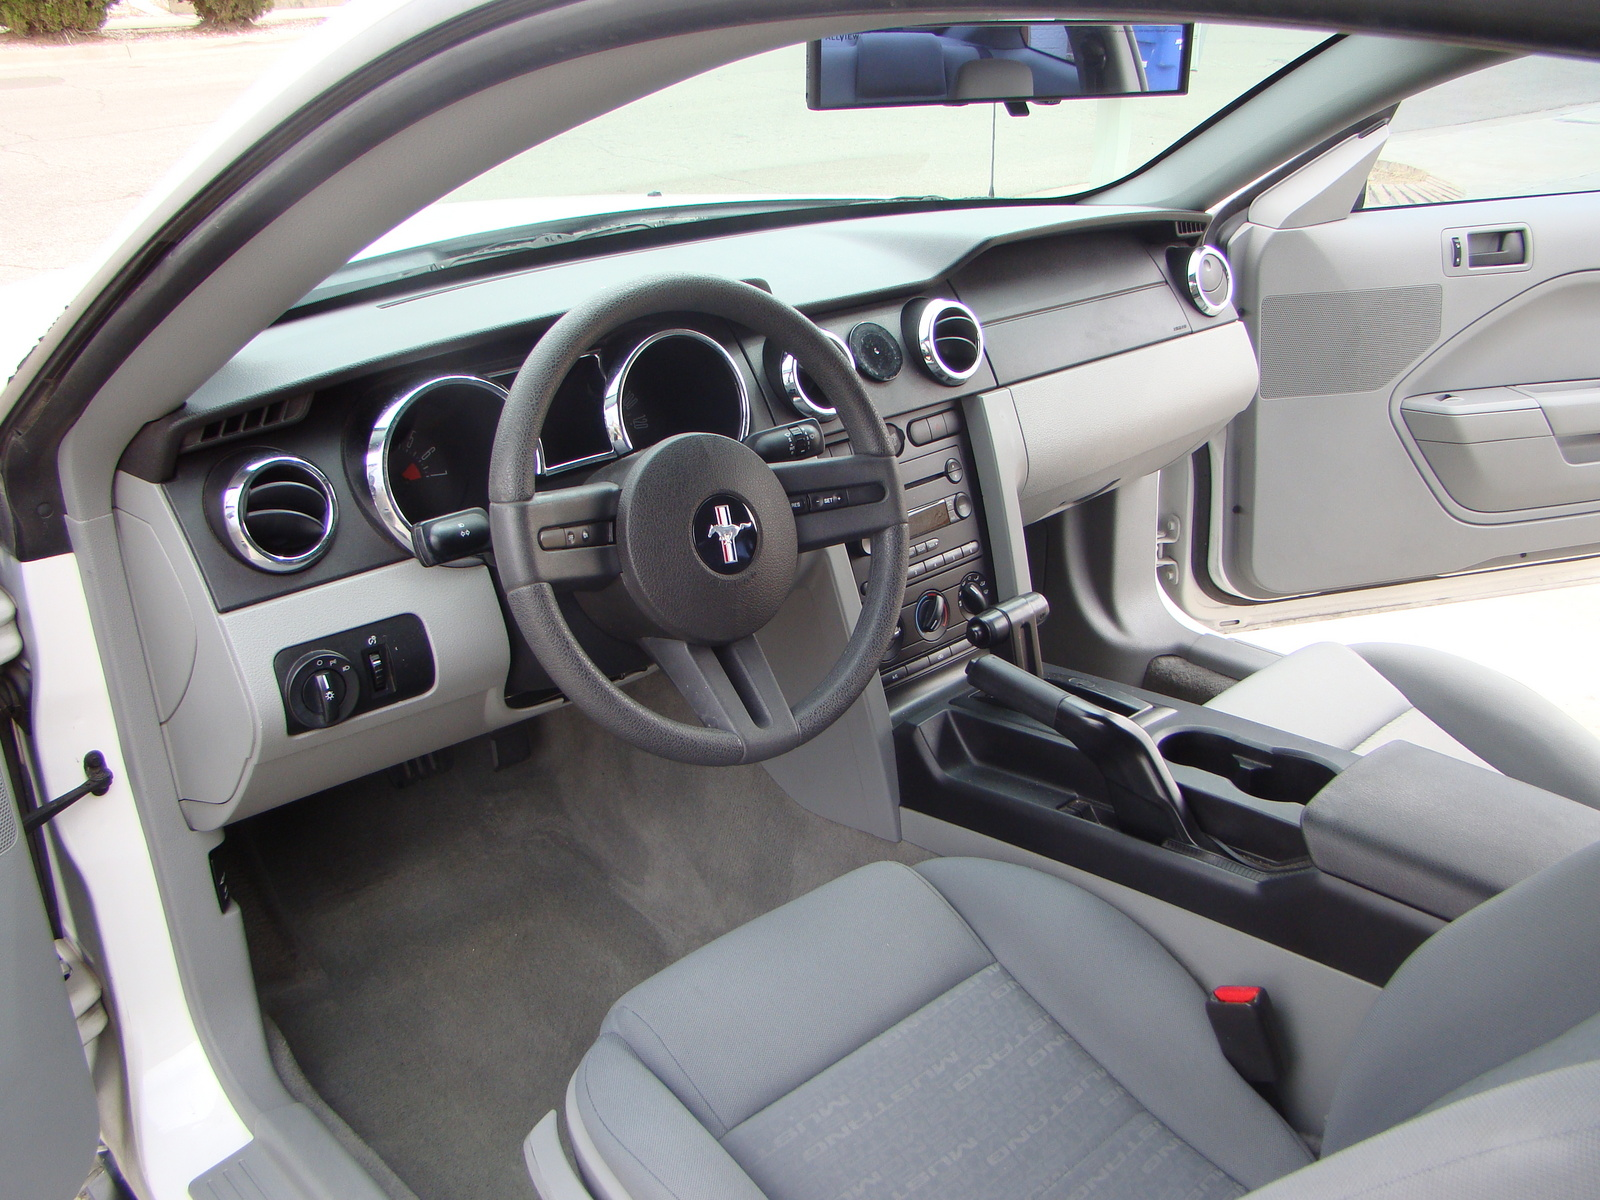 2005 ford mustang interior pictures cargurus for 2005 ford mustang convertible interior